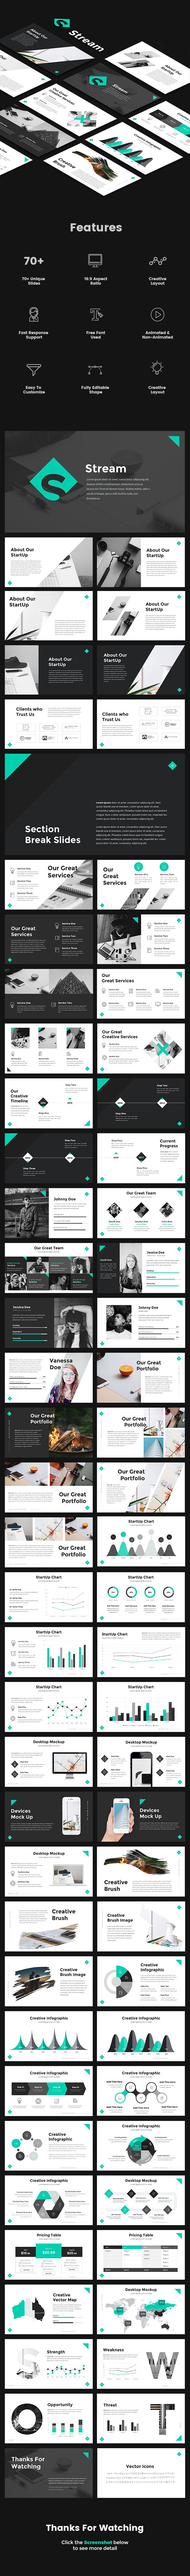 Stream - StartUp Pitch Deck PowerPoint Template - Pitch Deck PowerPoint Templates